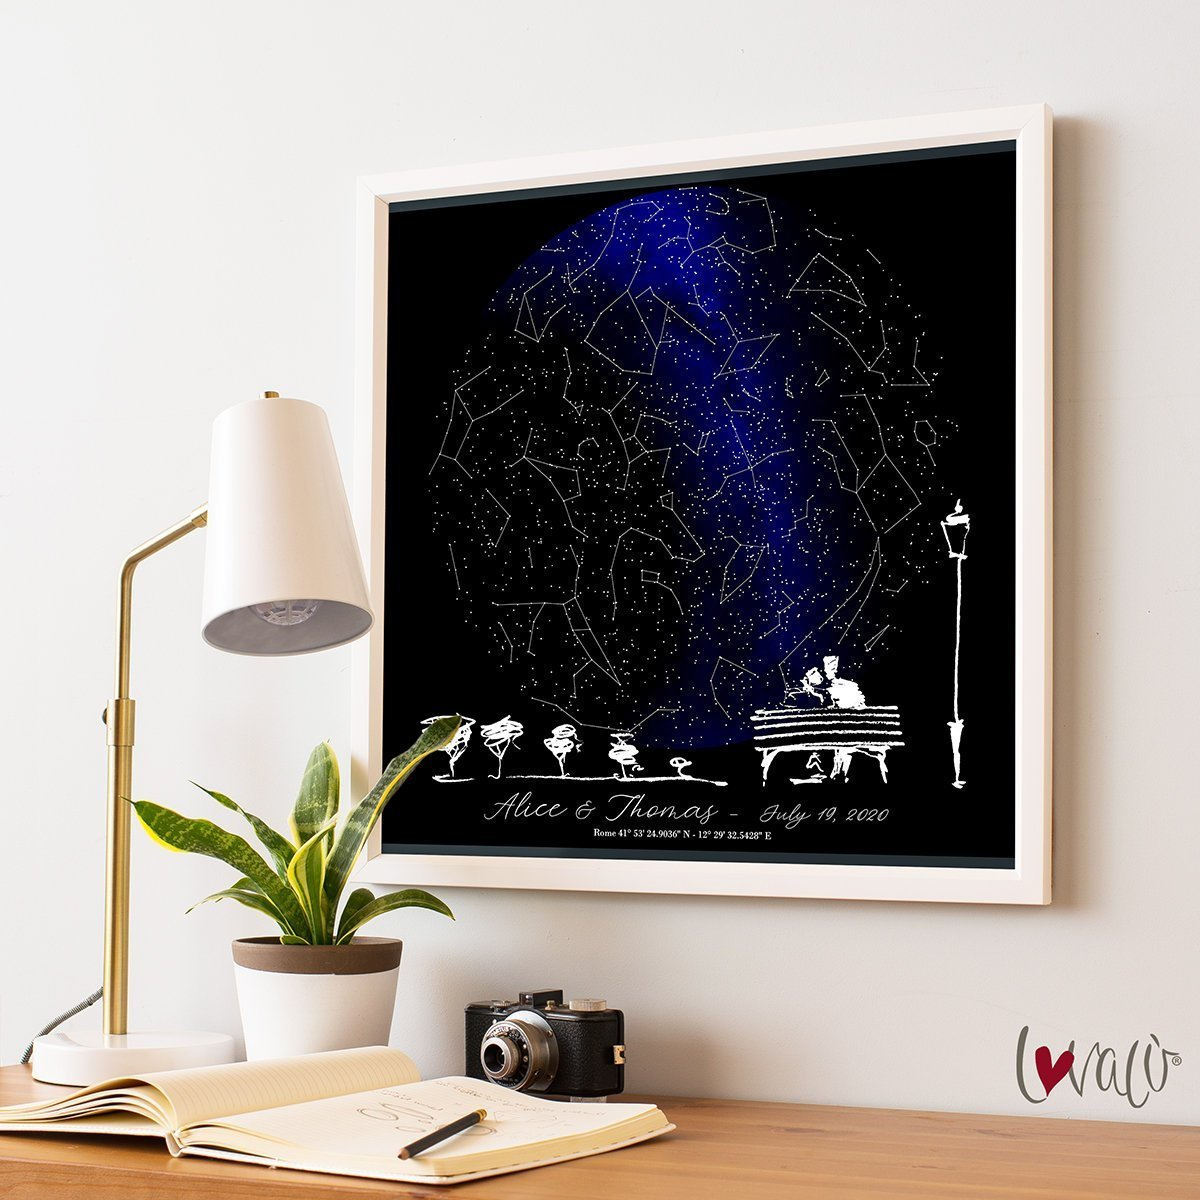 Custom Star Map, Night Sky Print, Star Map Poster, Wedding Gift, Constellation, Wedding Anniversary Gift, Personalized Gift, Engagement Gift - LovaluDesign